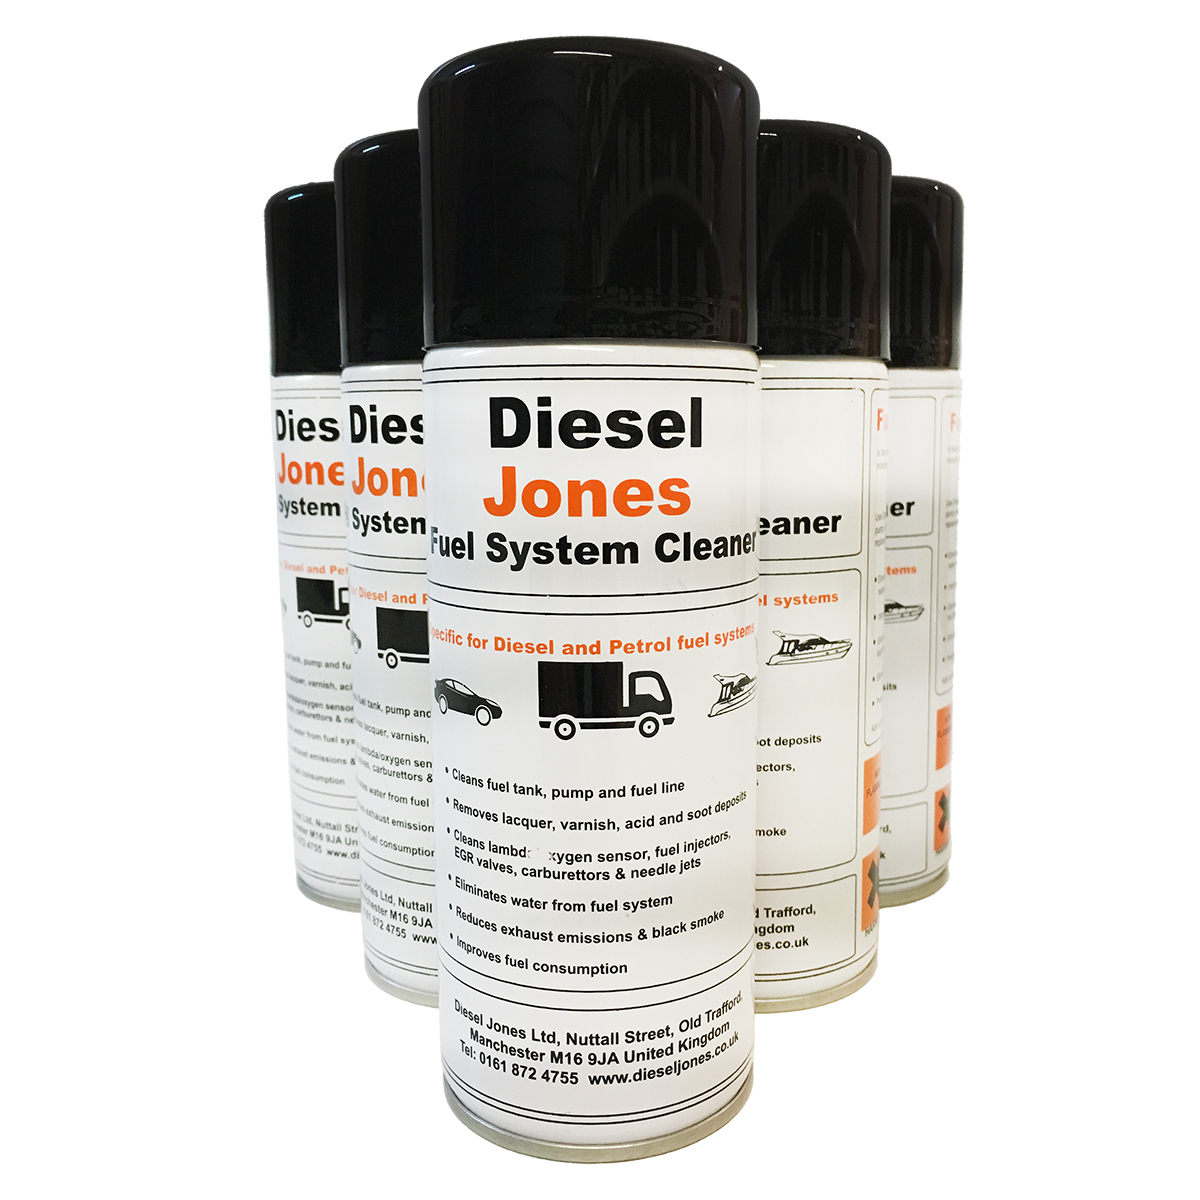 Diesel Jones Fuel System Cleaner